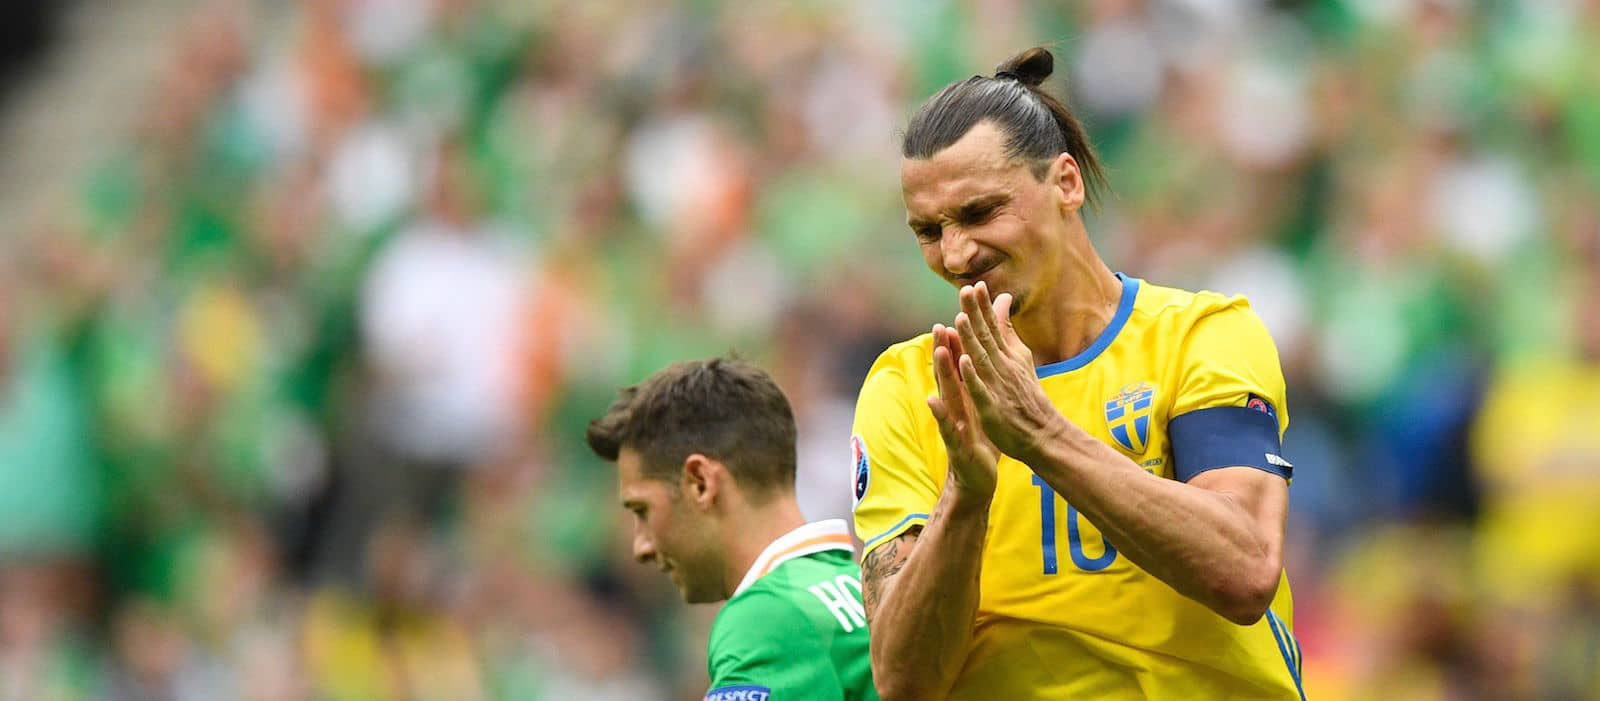 Zlatan Ibrahimovic helps Sweden earn draw against Ireland in Euro 2016 opener